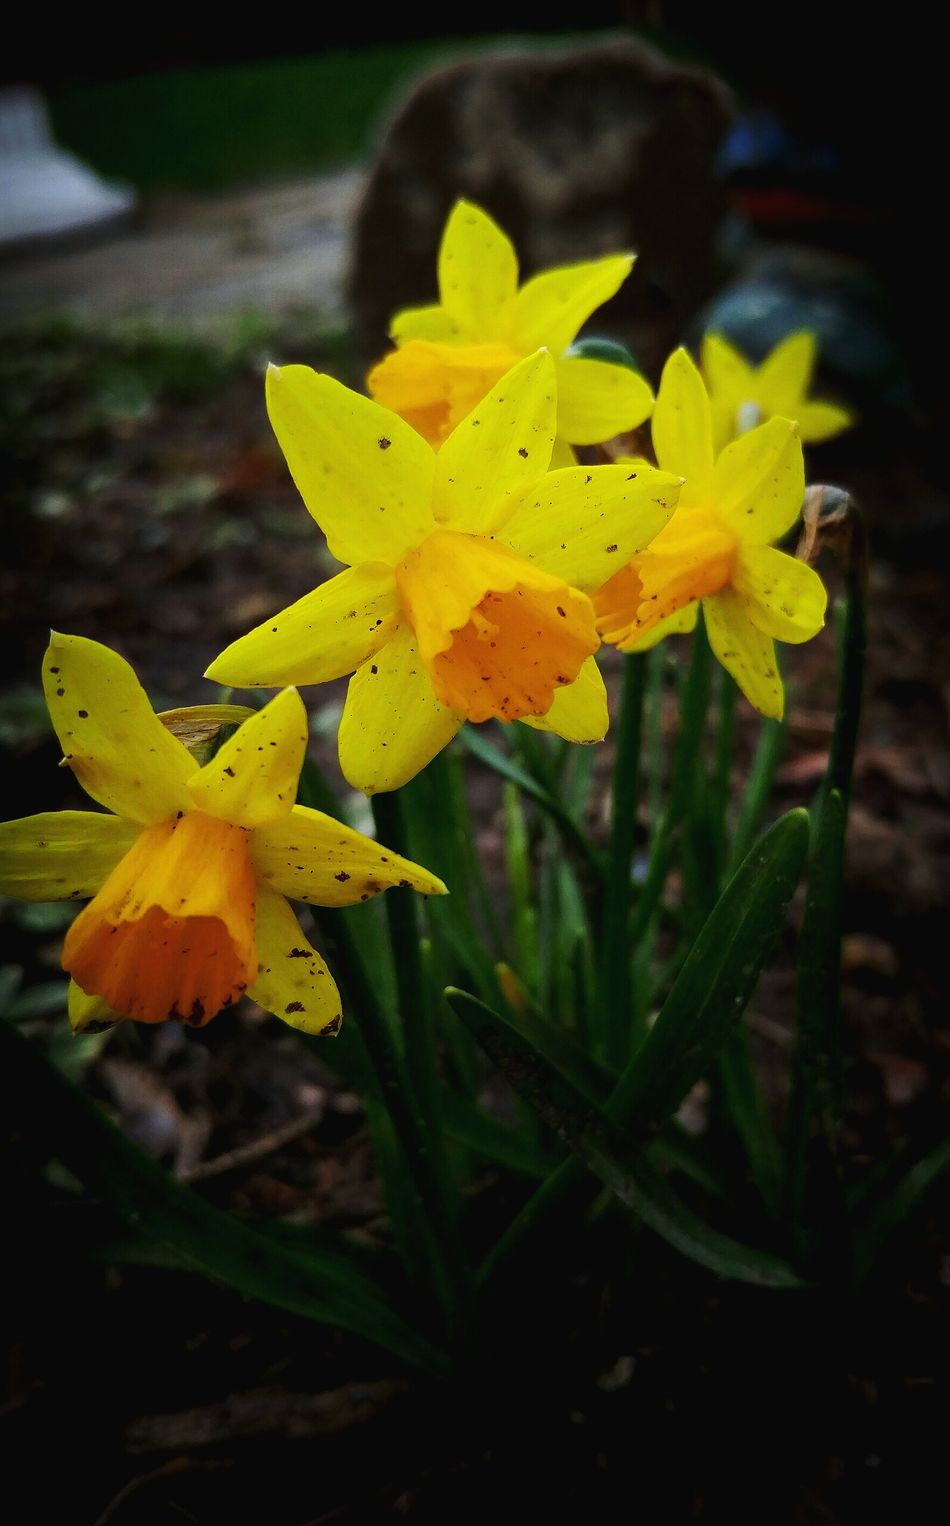 Mini daffodils... Yellow Nature Flower Beauty In Nature PlantGrowth Outdoors Hanging Out EyeEm Taking Photos Eye Em Around The World Hello World Check This Out Not Strange To Me Flowers,Plants & Garden Flowers, Nature And Beauty Nature Close-up